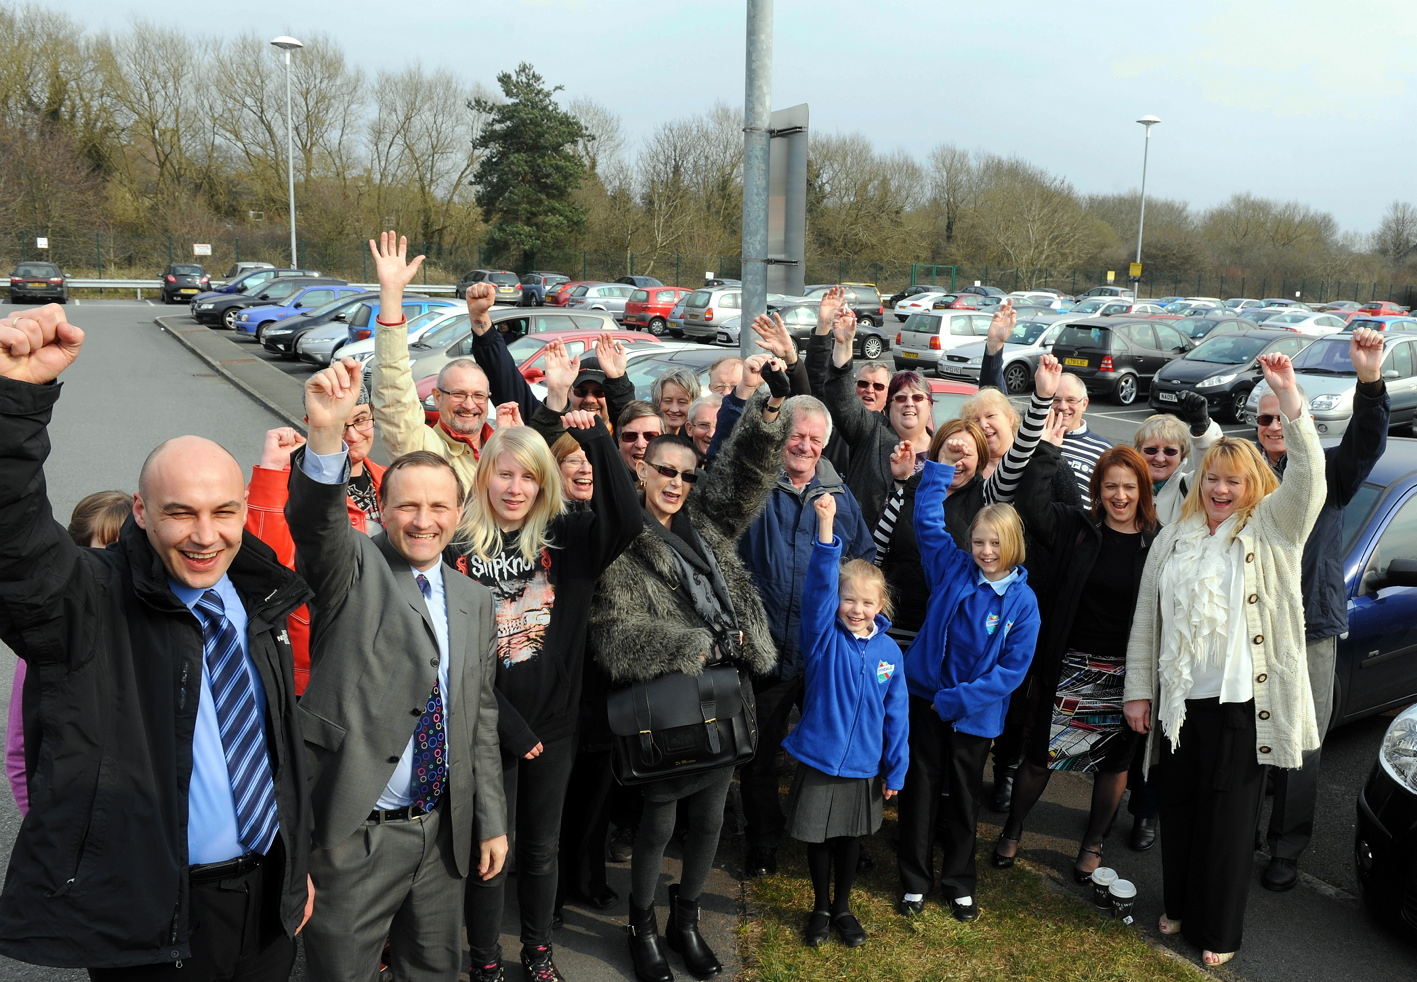 Yate celebrates cinema plan approval despite councillor majority refusing to vote